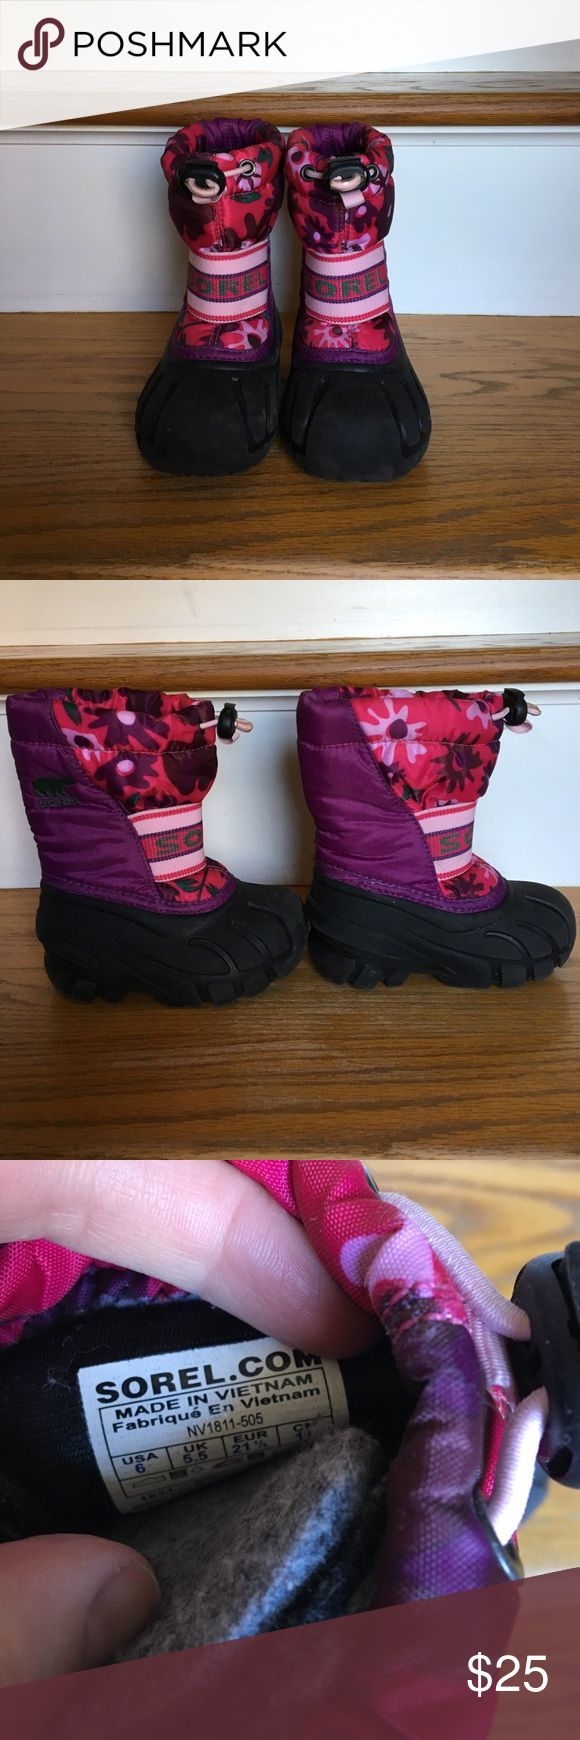 Sorel snow boots Pink & purple little girls snow boots in excellent condition! These come with warm liners. Sorel Shoes Rain & Snow Boots